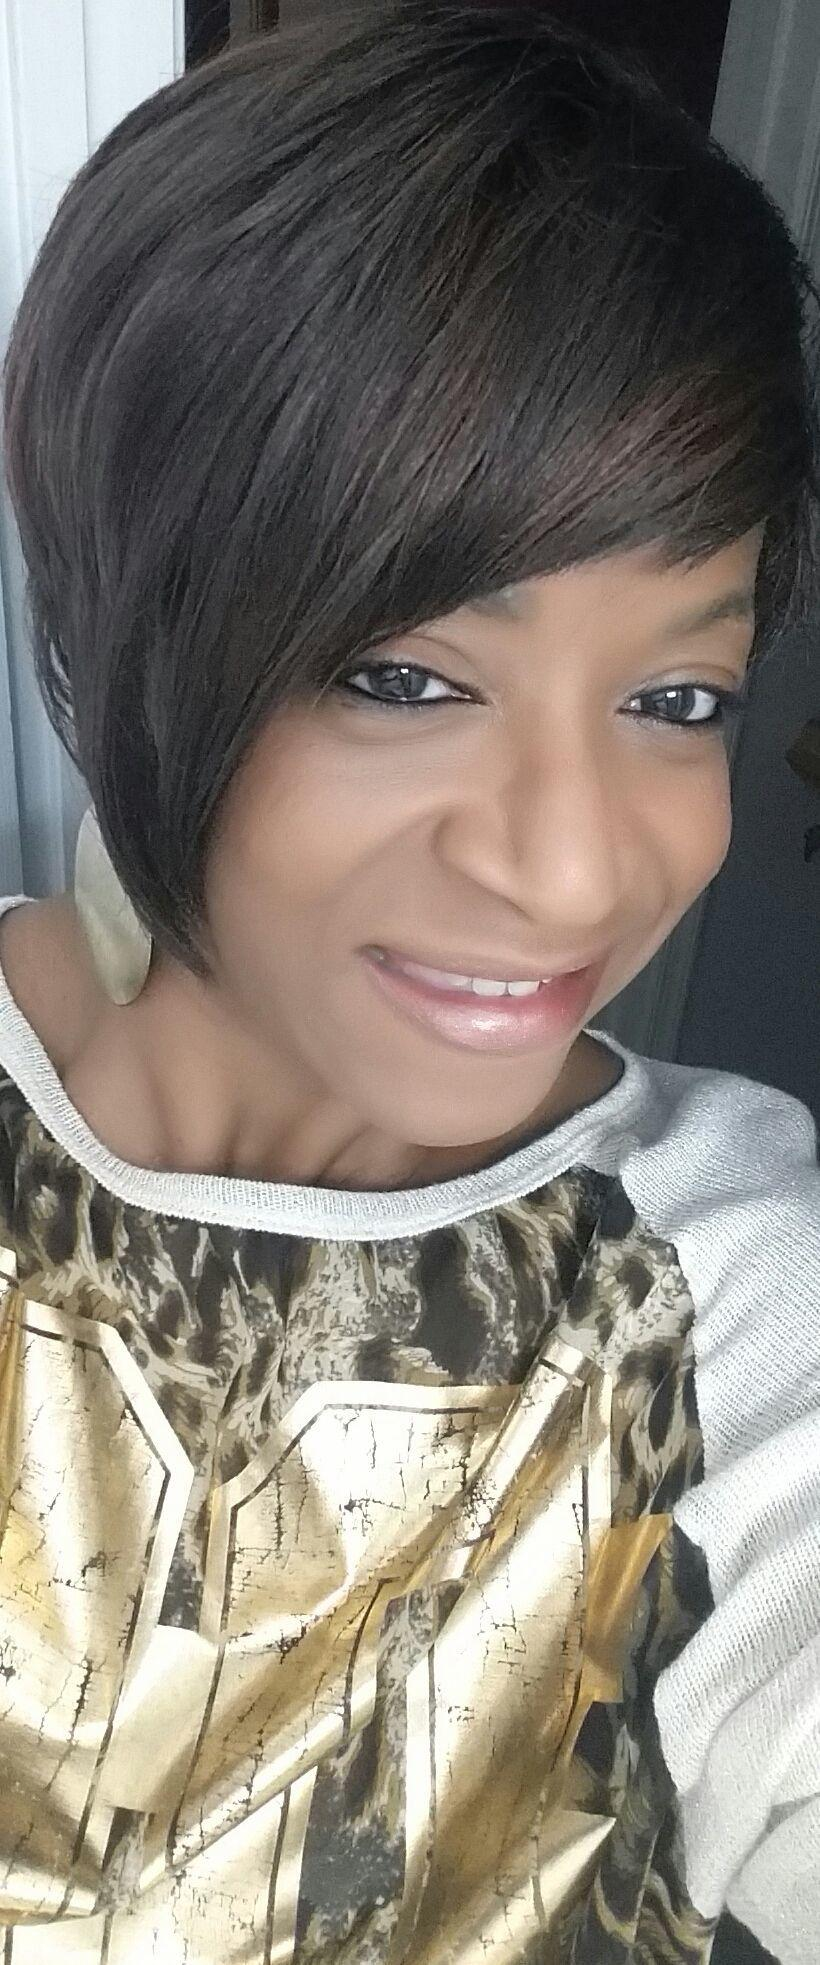 black singles in washington county Meet washington singles online & chat in the forums dhu is a 100% free dating site to find personals & casual encounters in washington.